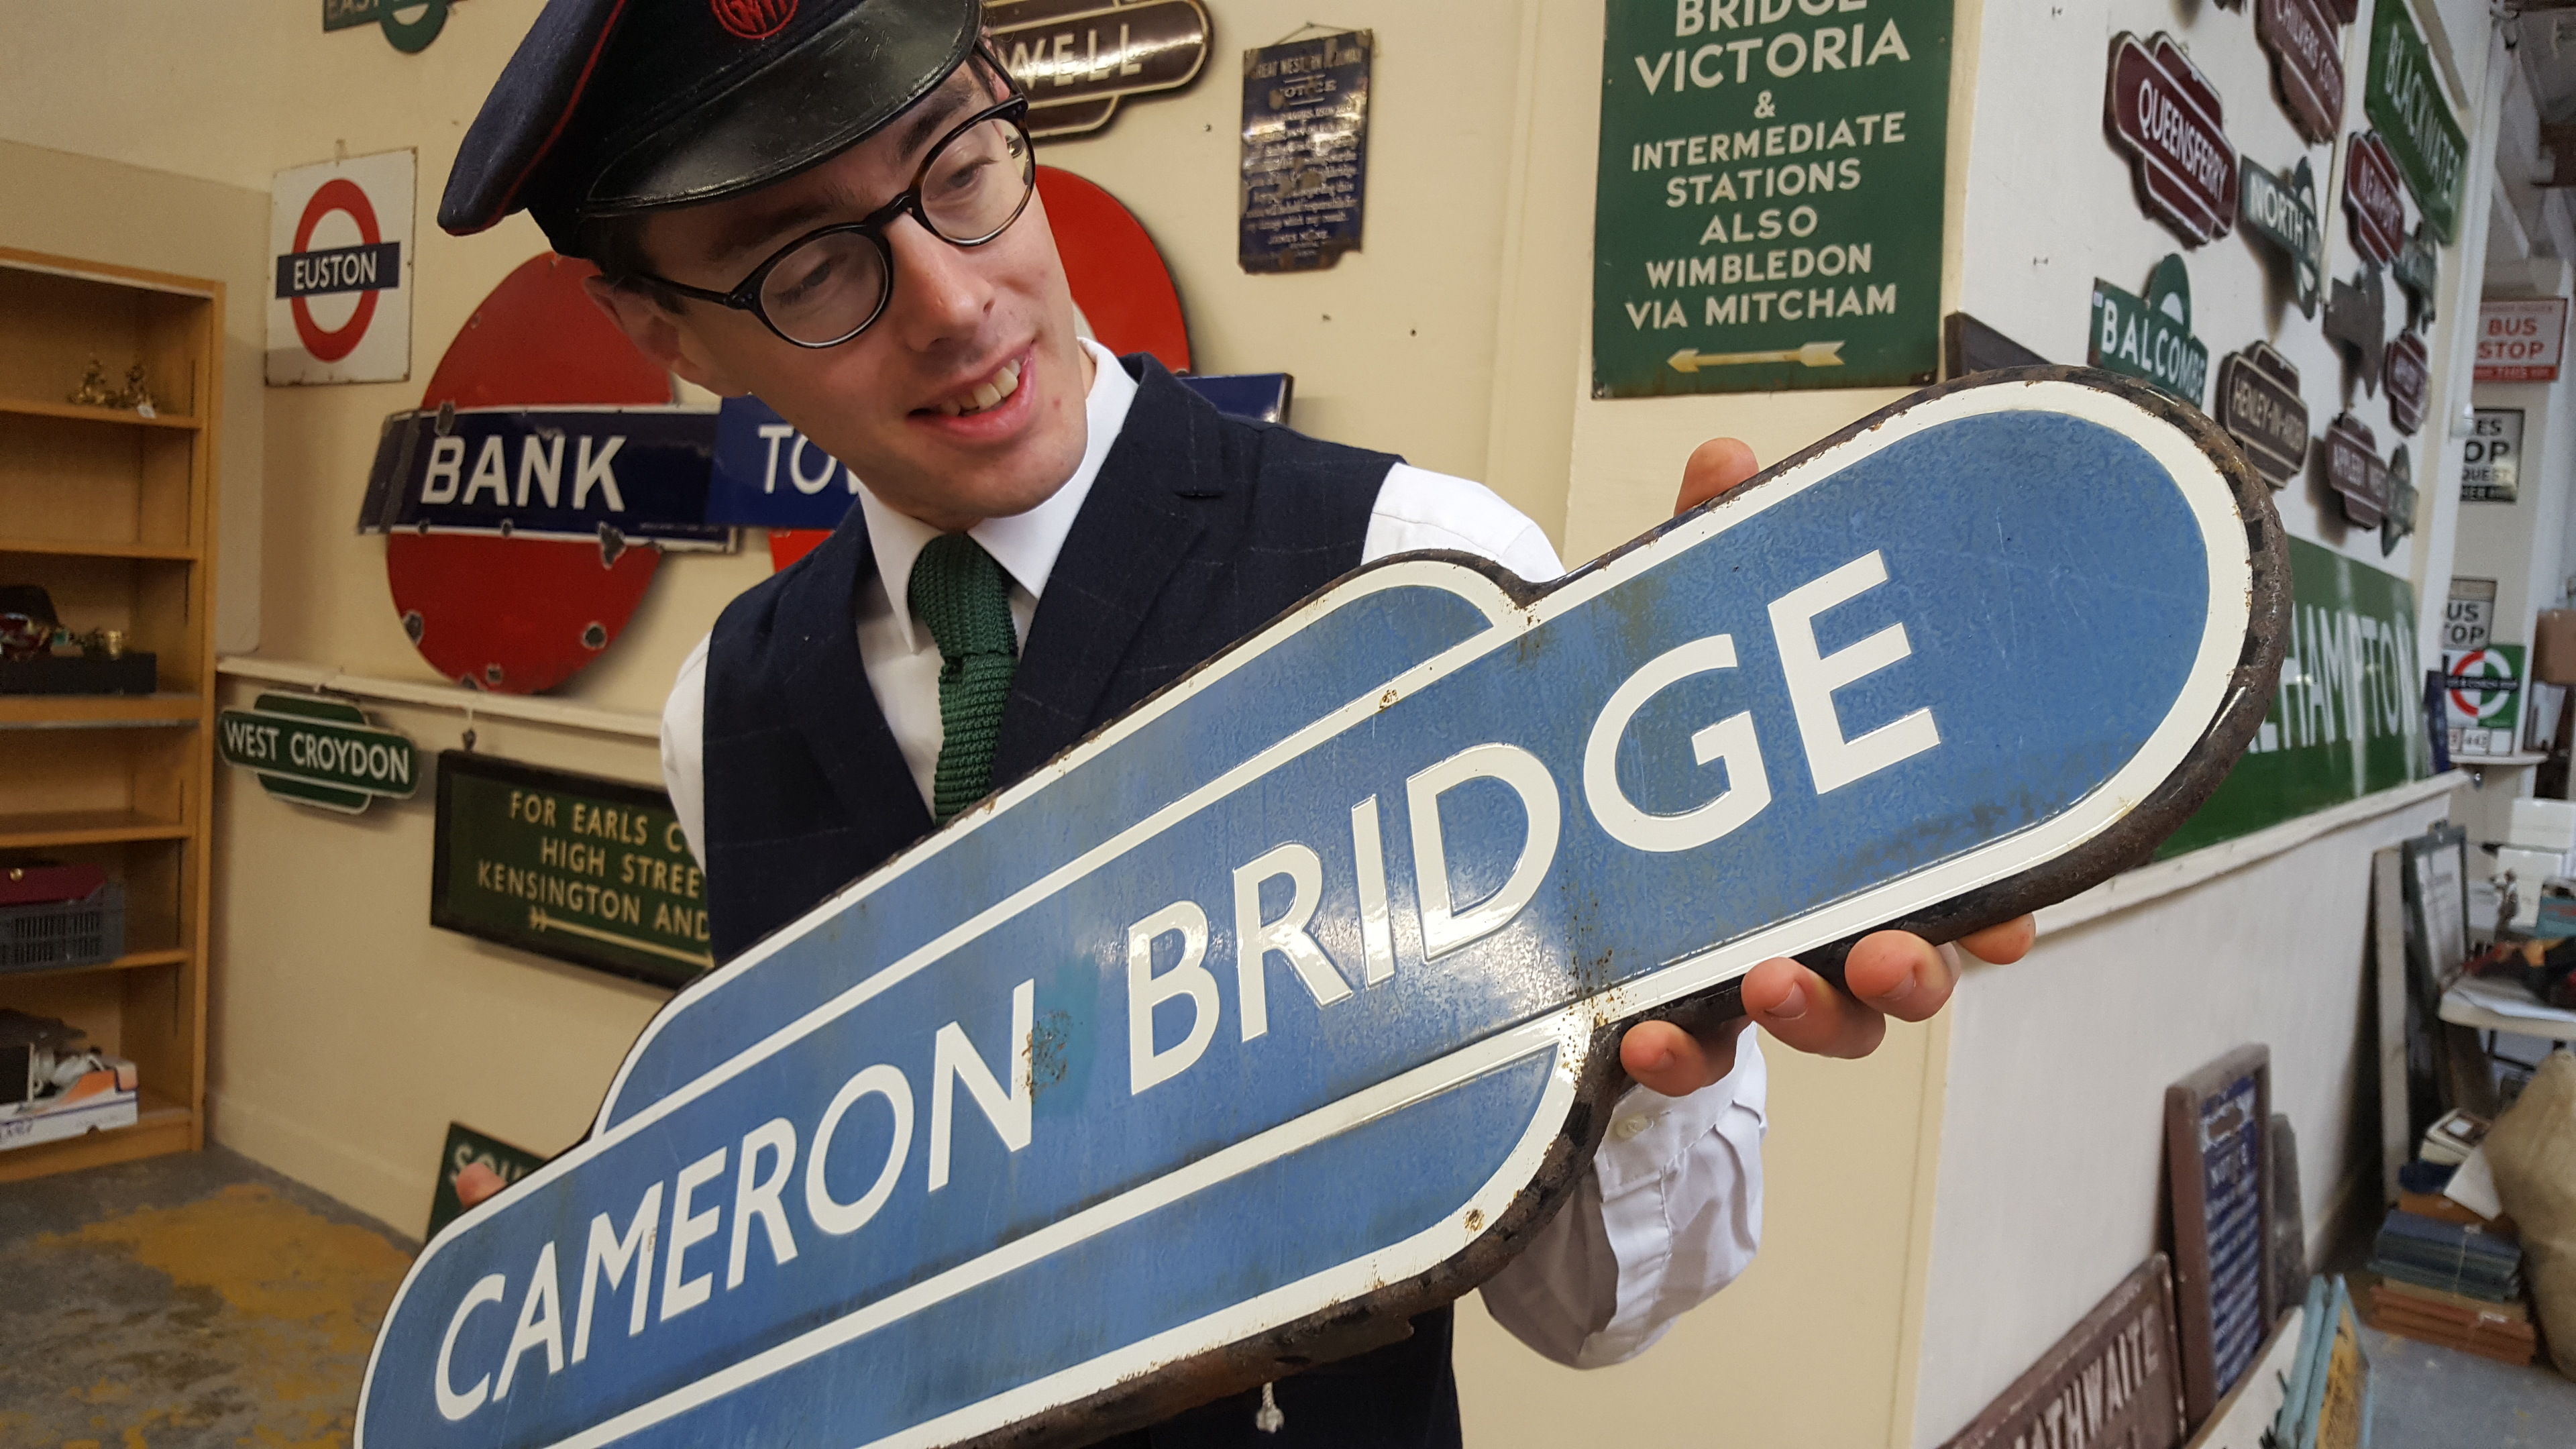 Auctioneer Richard Edmonds with the Cameron Bridge sign.